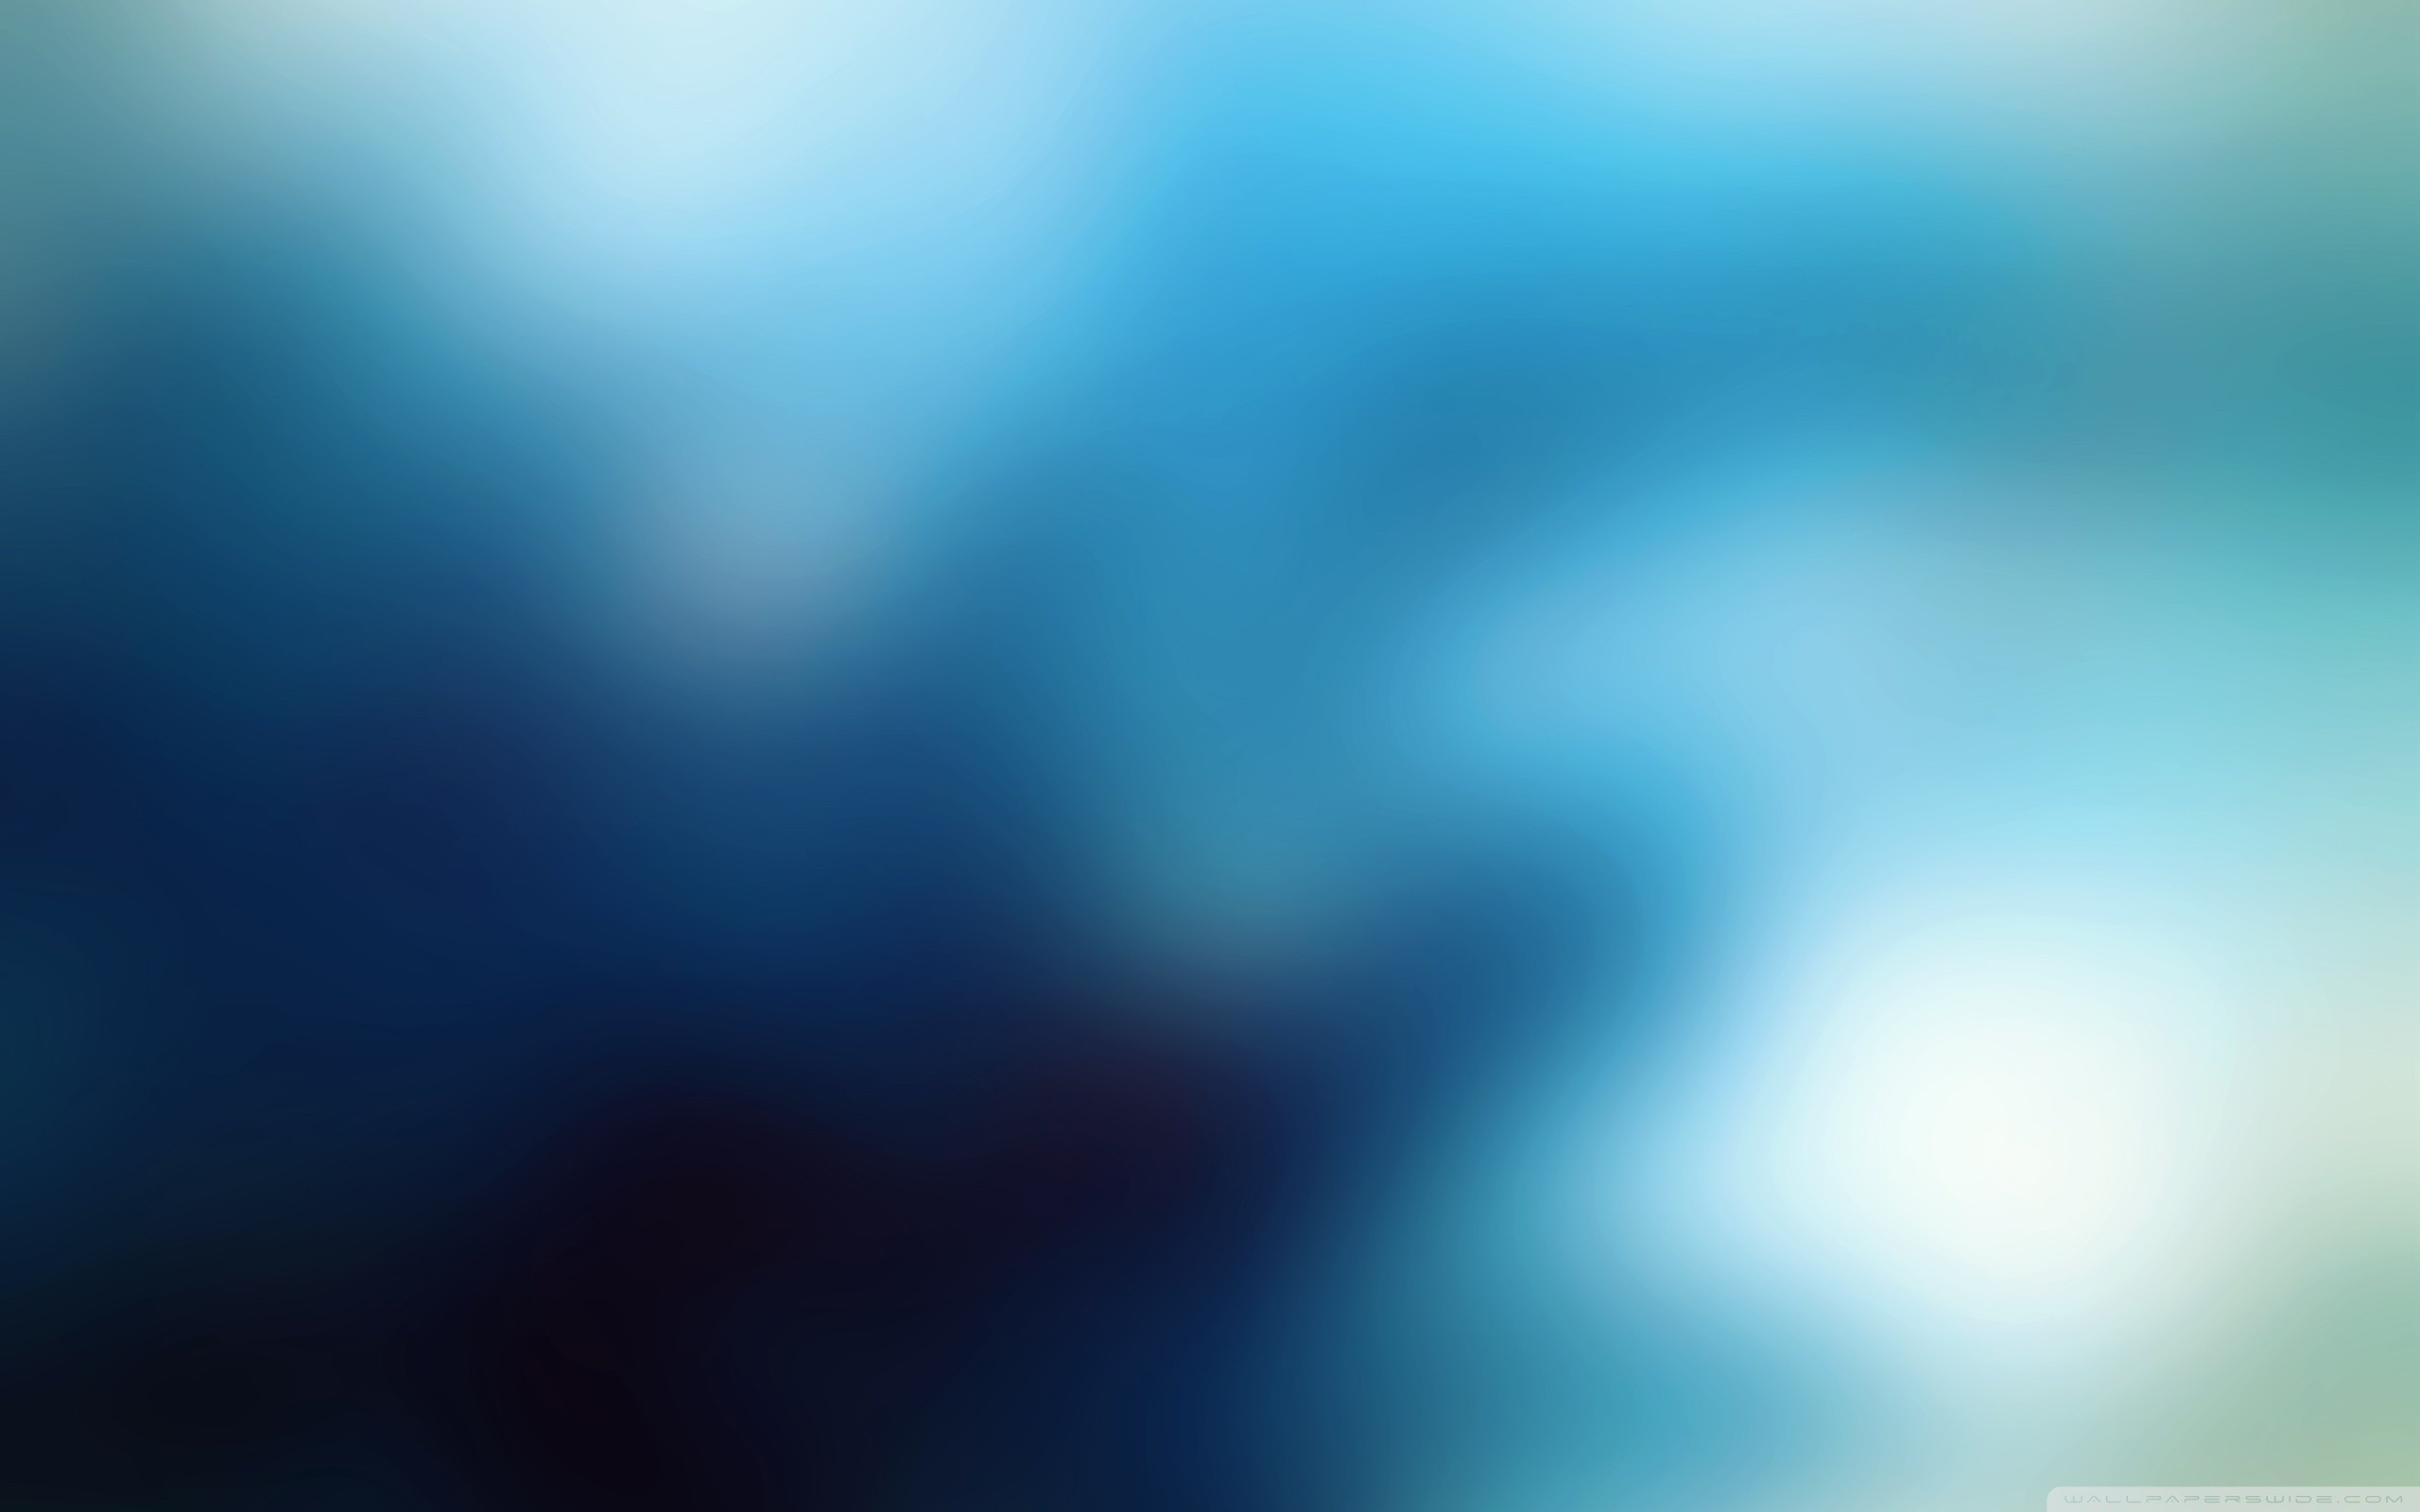 blurry background download free high resolution backgrounds